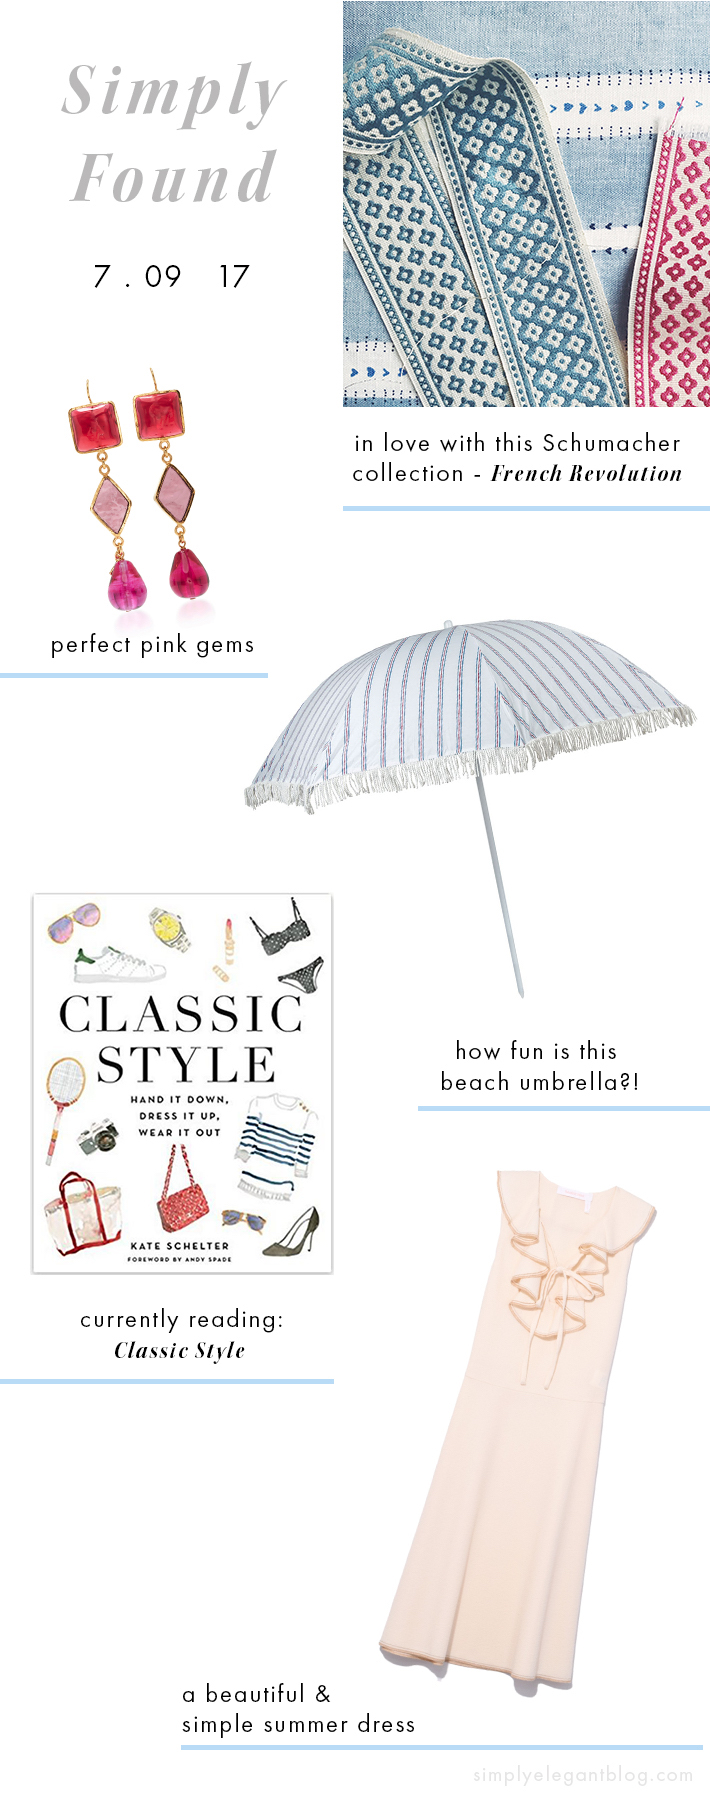 Schumacher French Revolution fabric, The Maryn beach umbrella and Classic Style by Kate Schelter